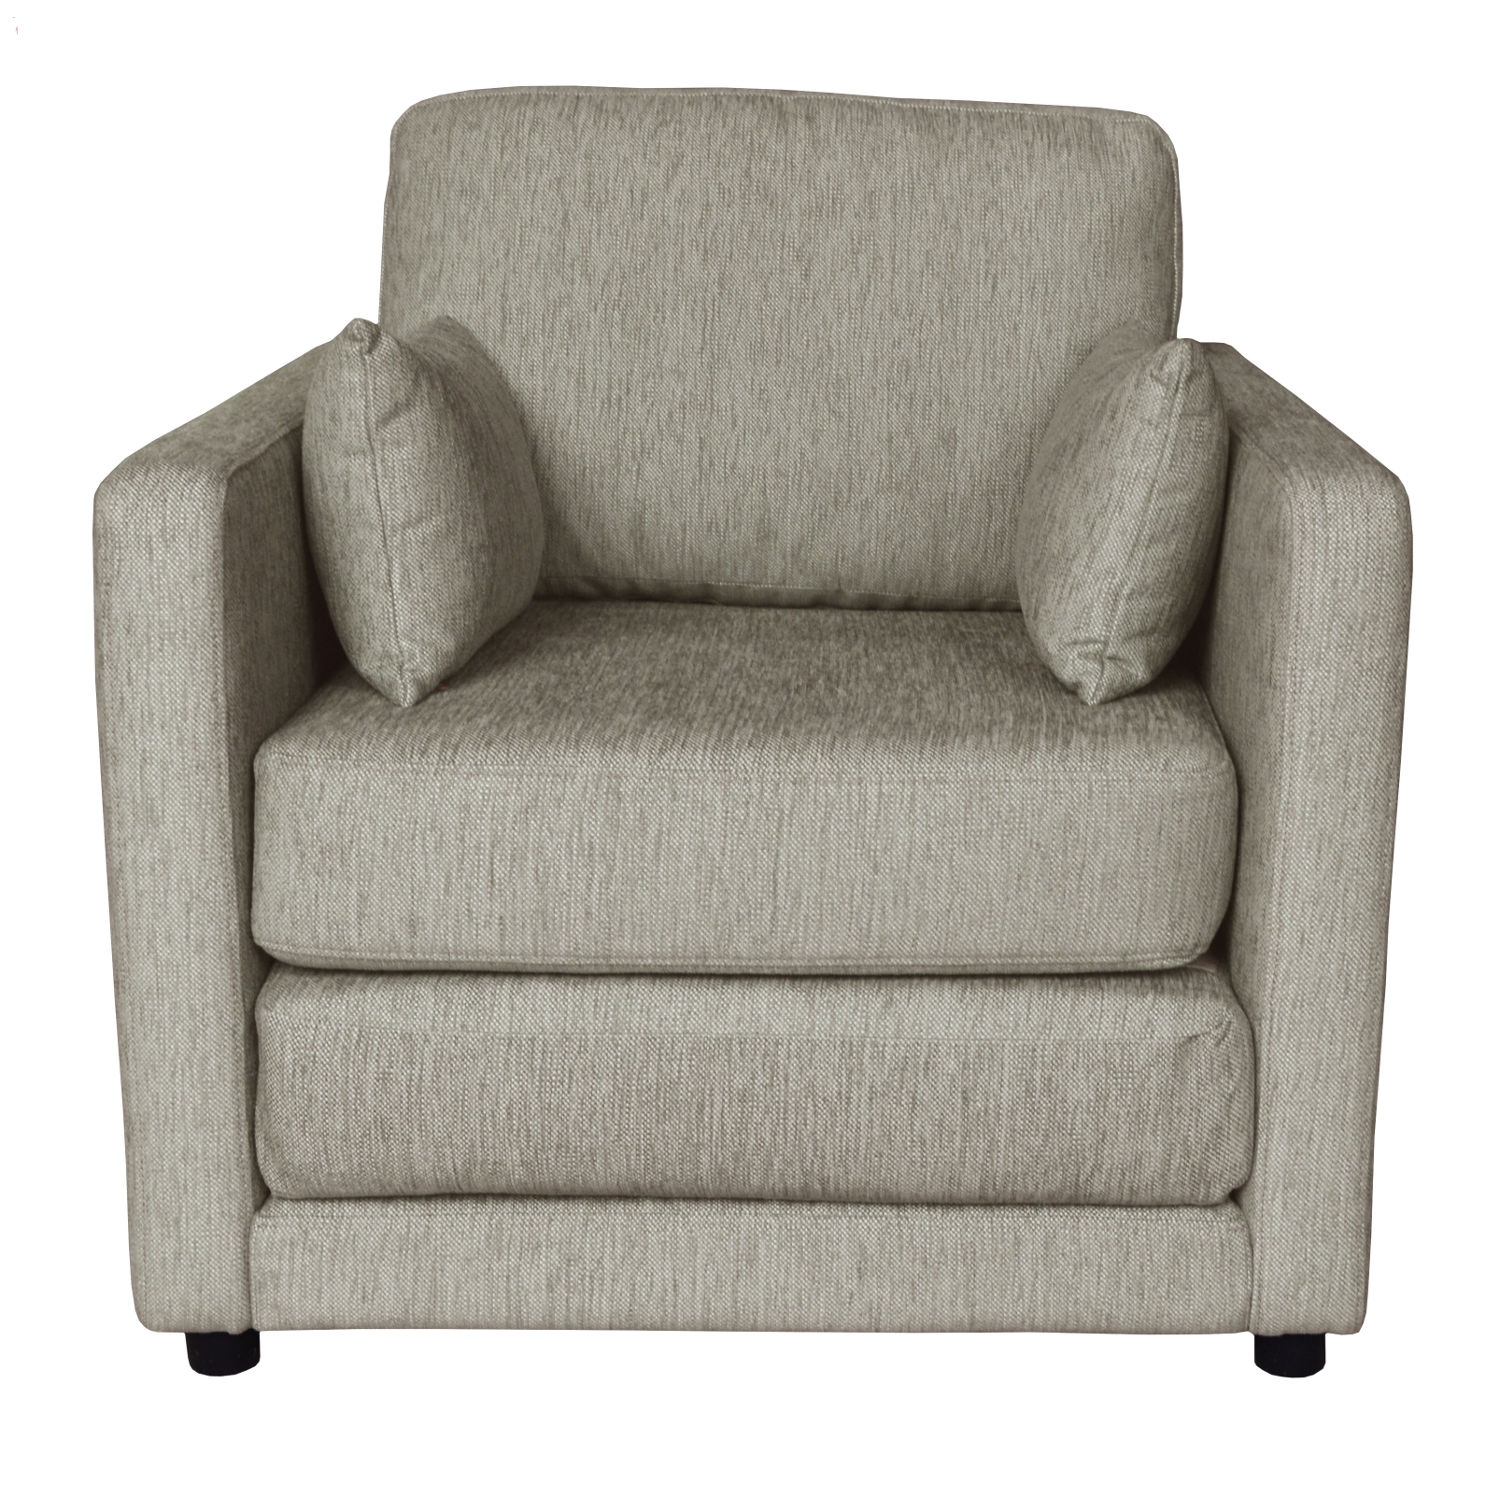 Featured Image of Sofa With Chairs